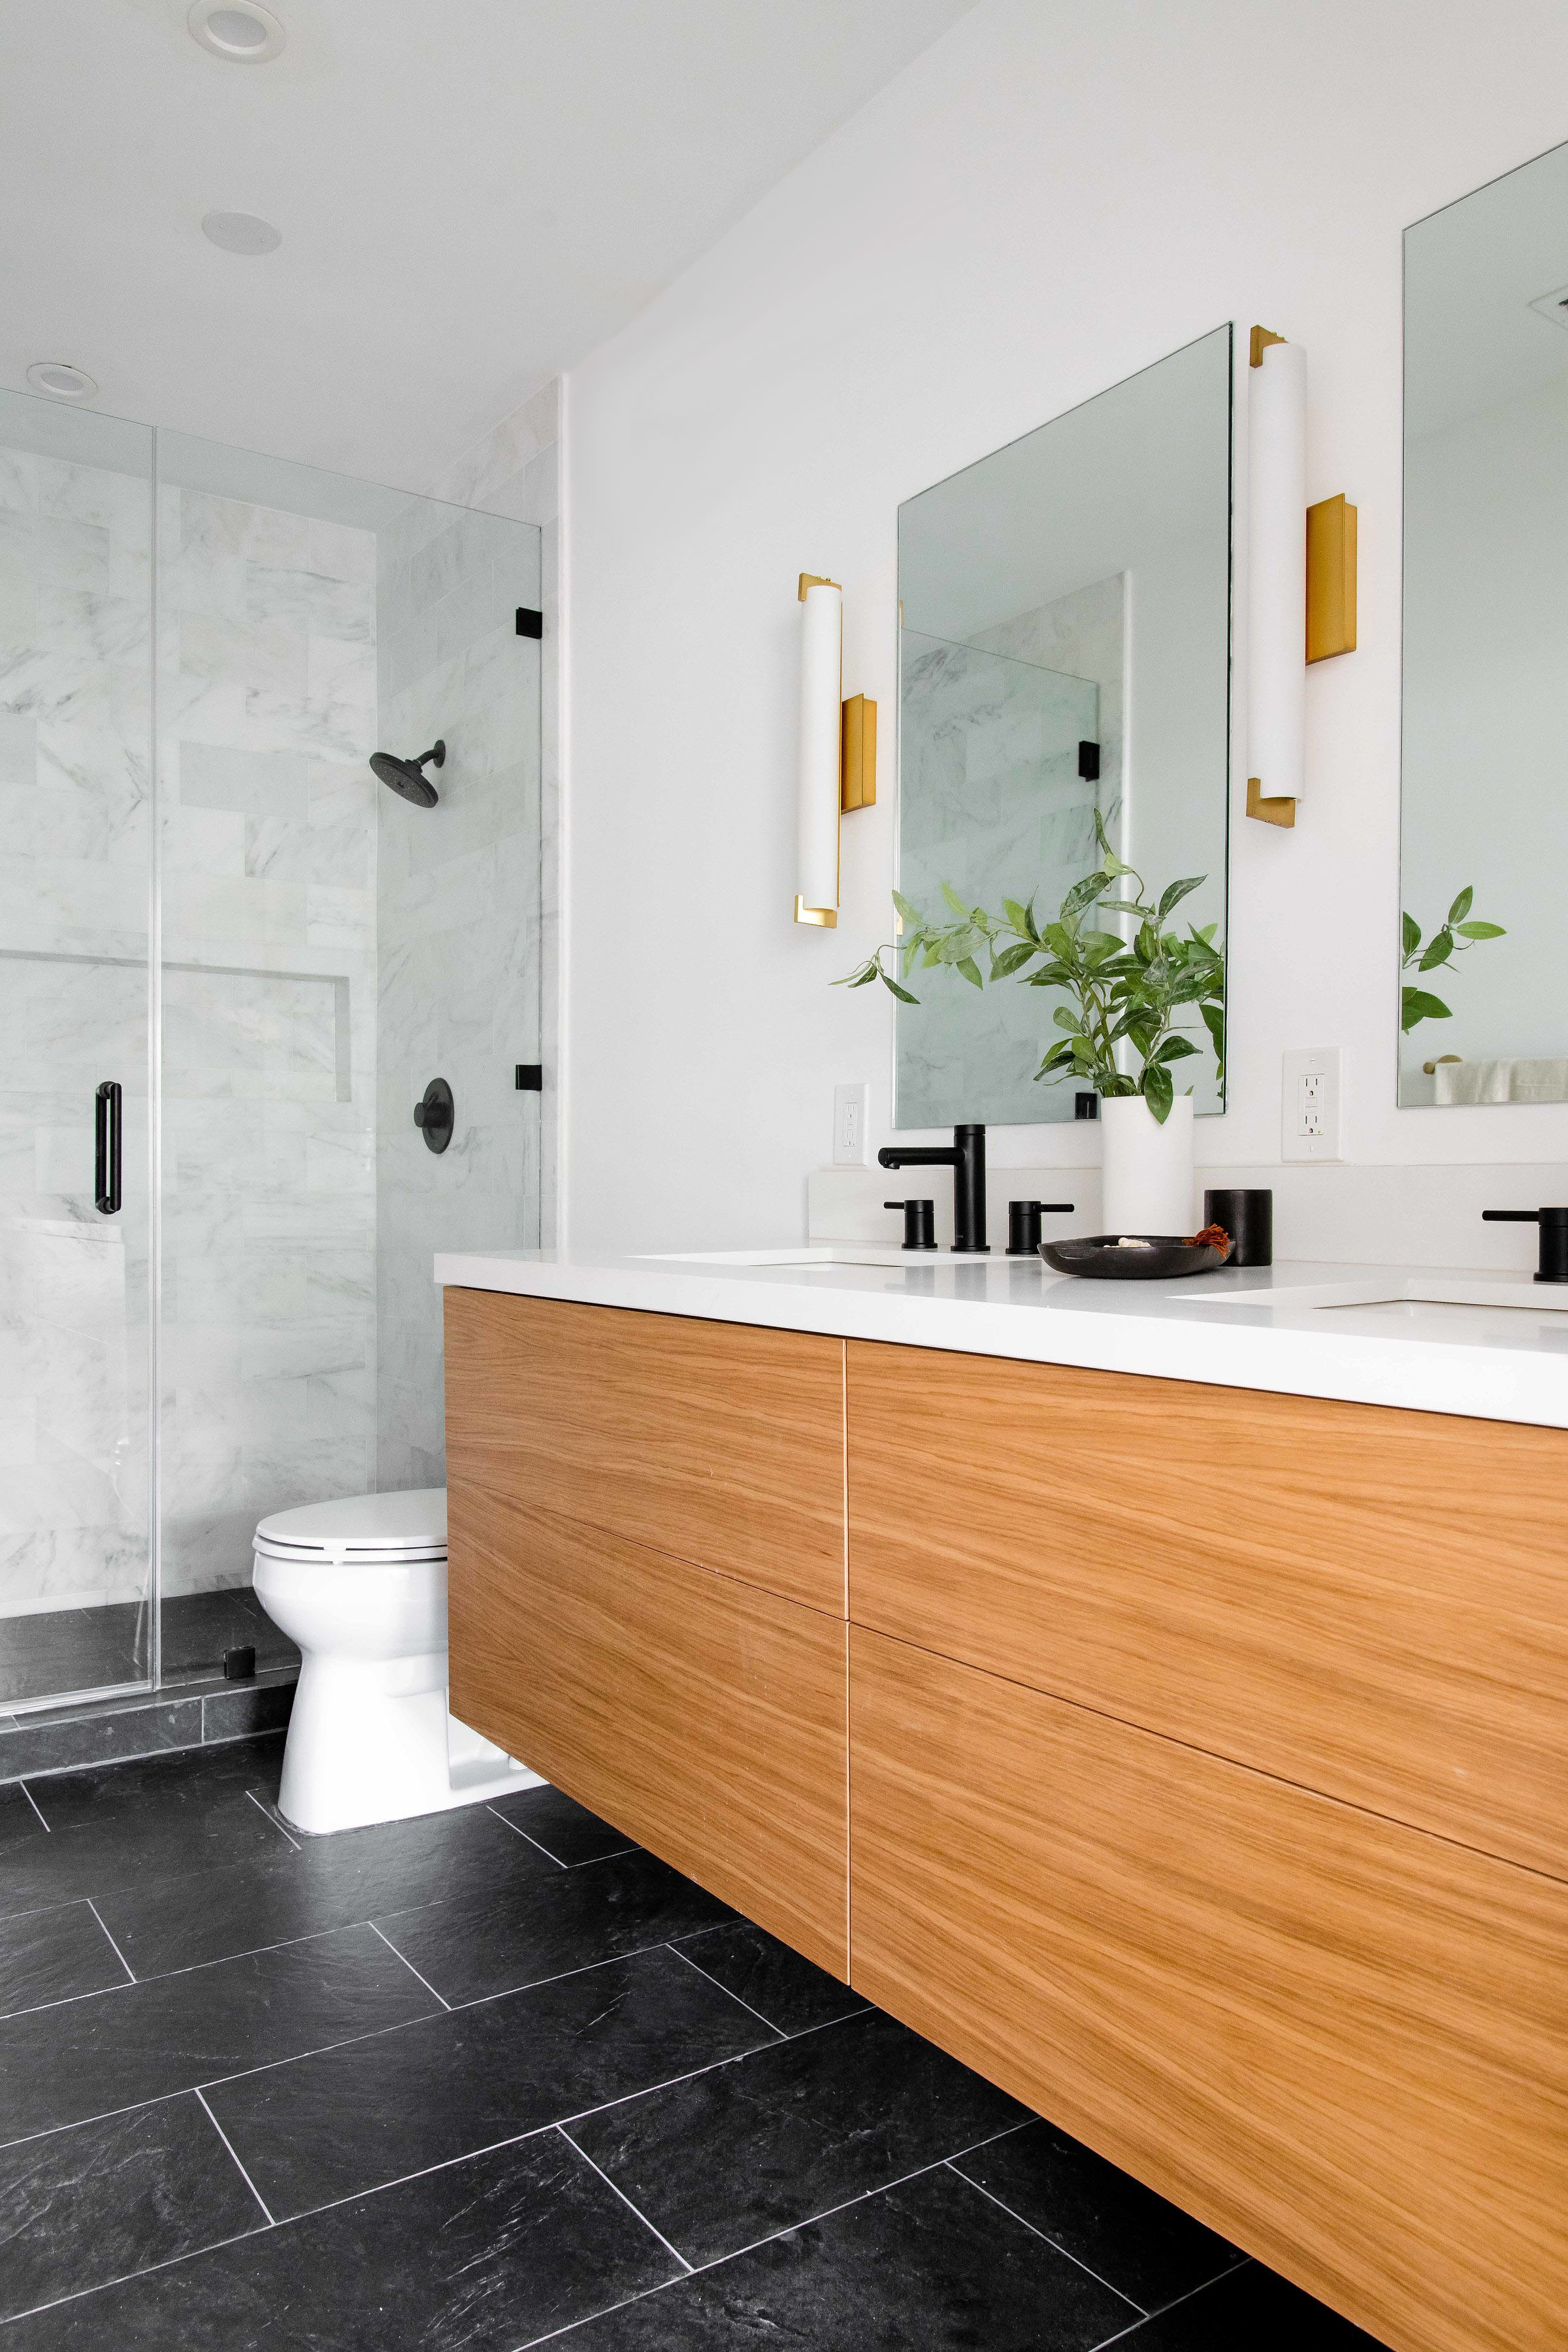 marble walk in shower with wooden vanity - the habitat collective interior design - #projectpeachy